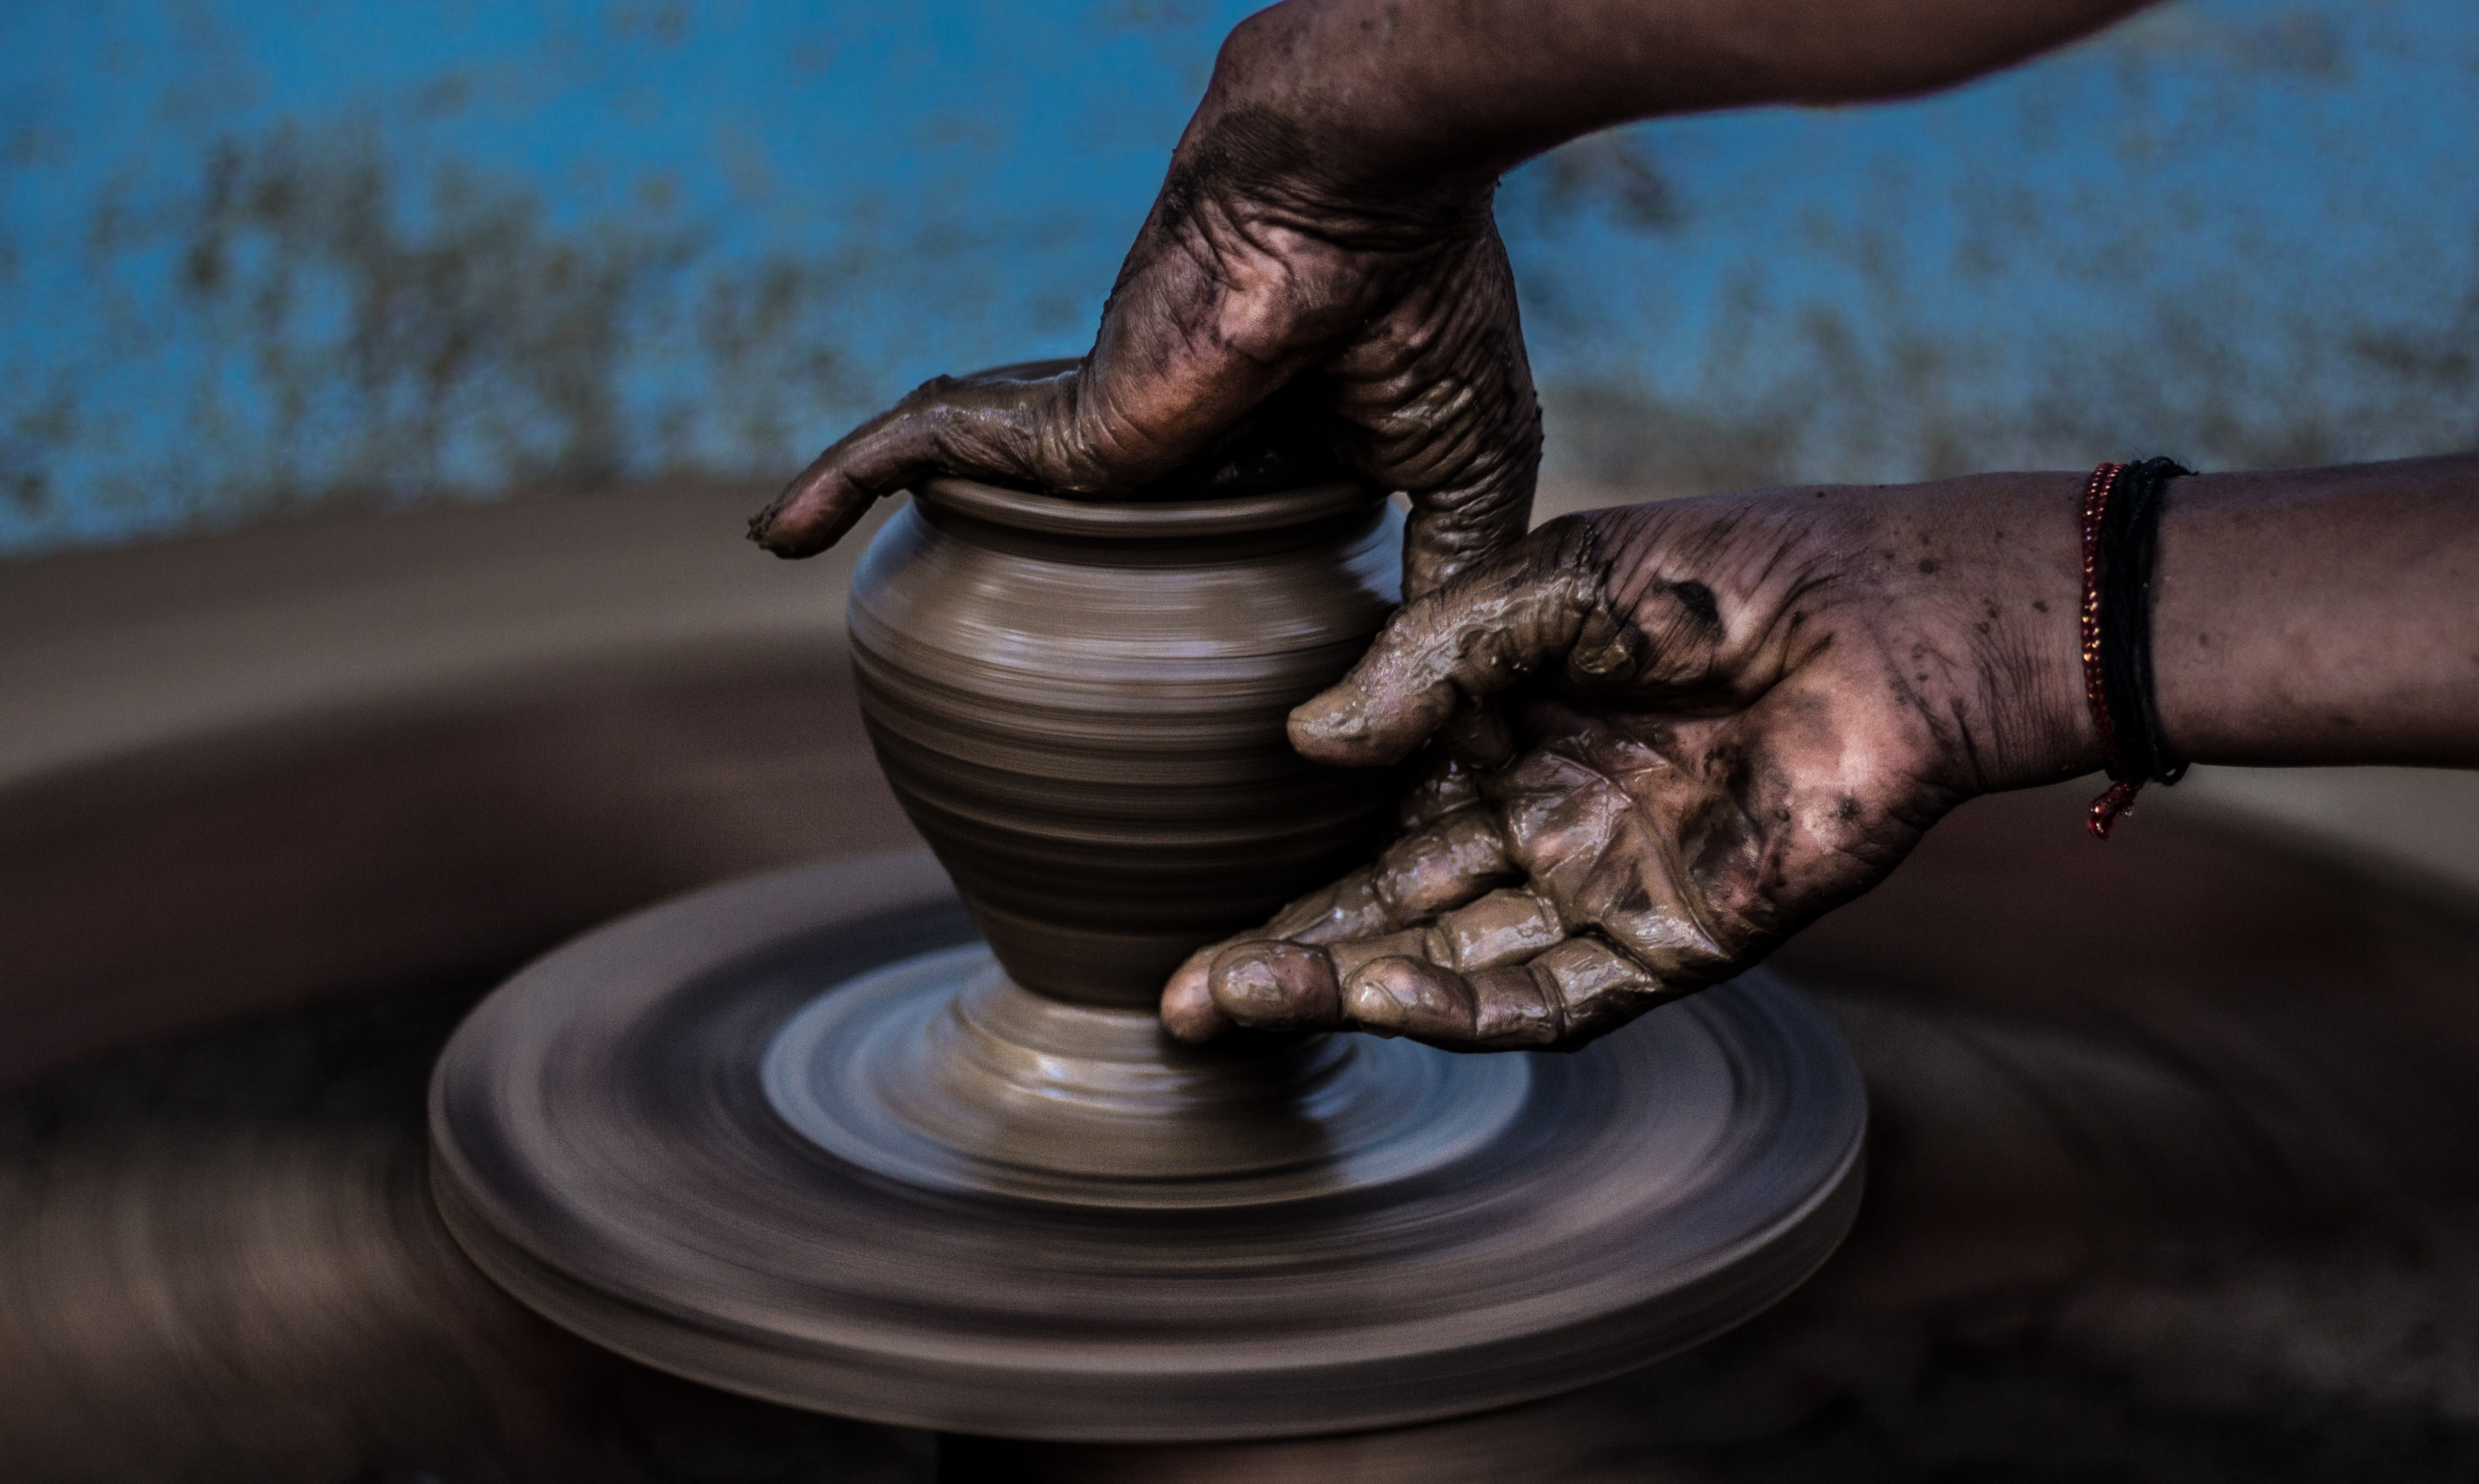 Hands create art on a pottery wheel